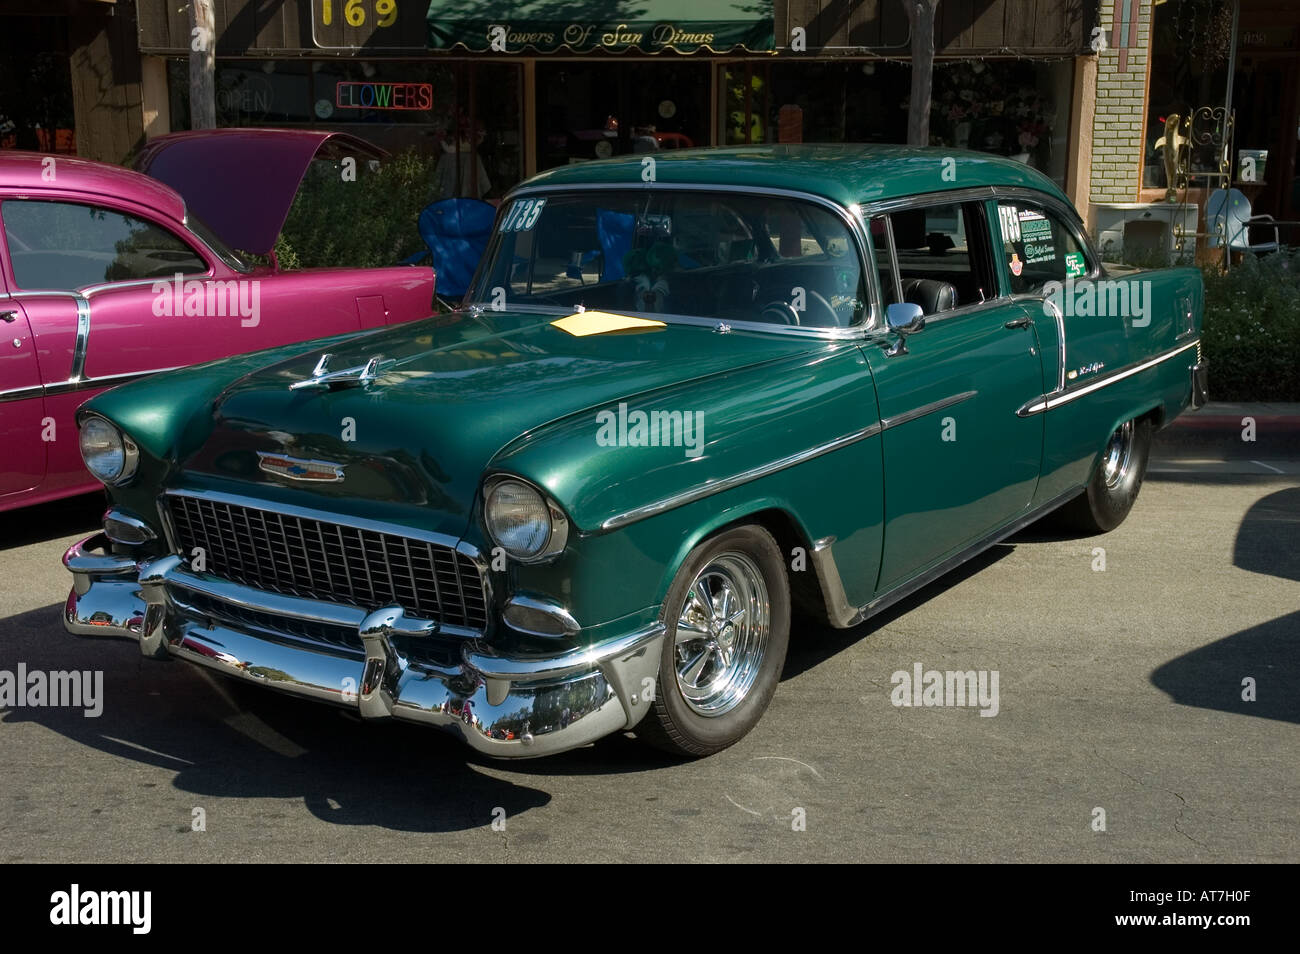 Los Angeles California Car Show Antique Customized Chevrolet Chevy Bel Air  1955 55 Green   Stock